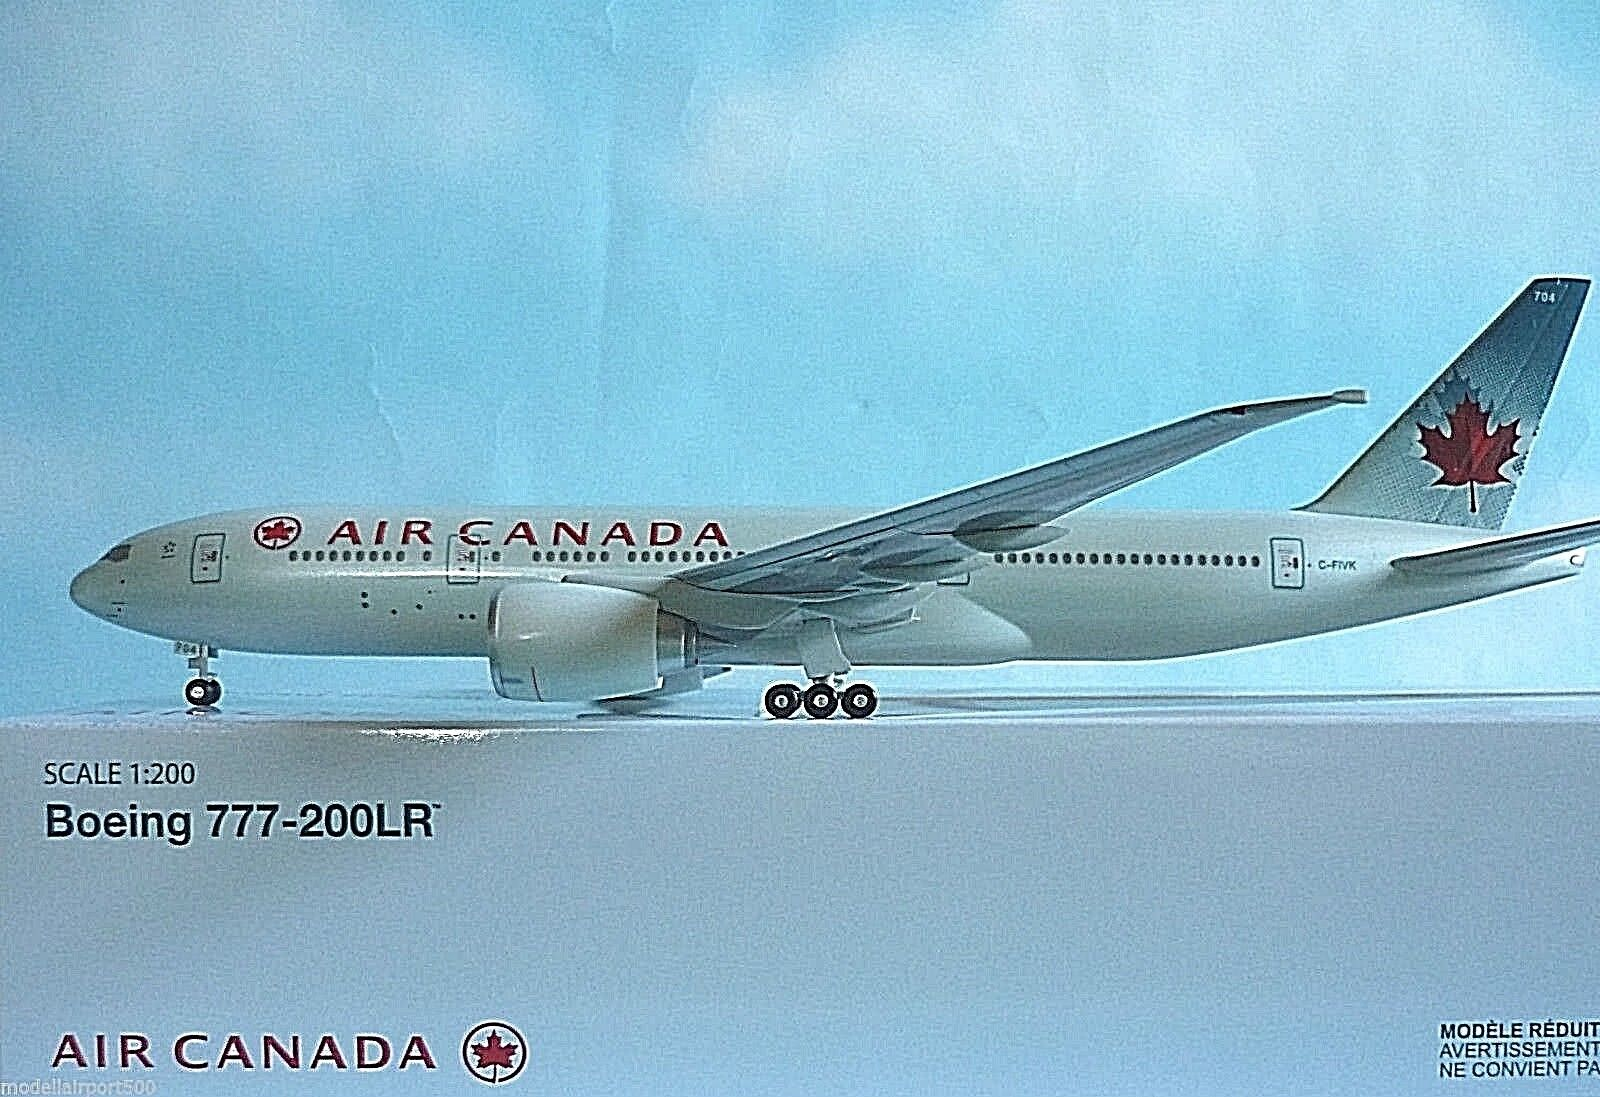 HOGAN Wings 1:200 Boeing 777-200lr Air Canada C-fivk li0335 + Herpa WINGS Catalogo